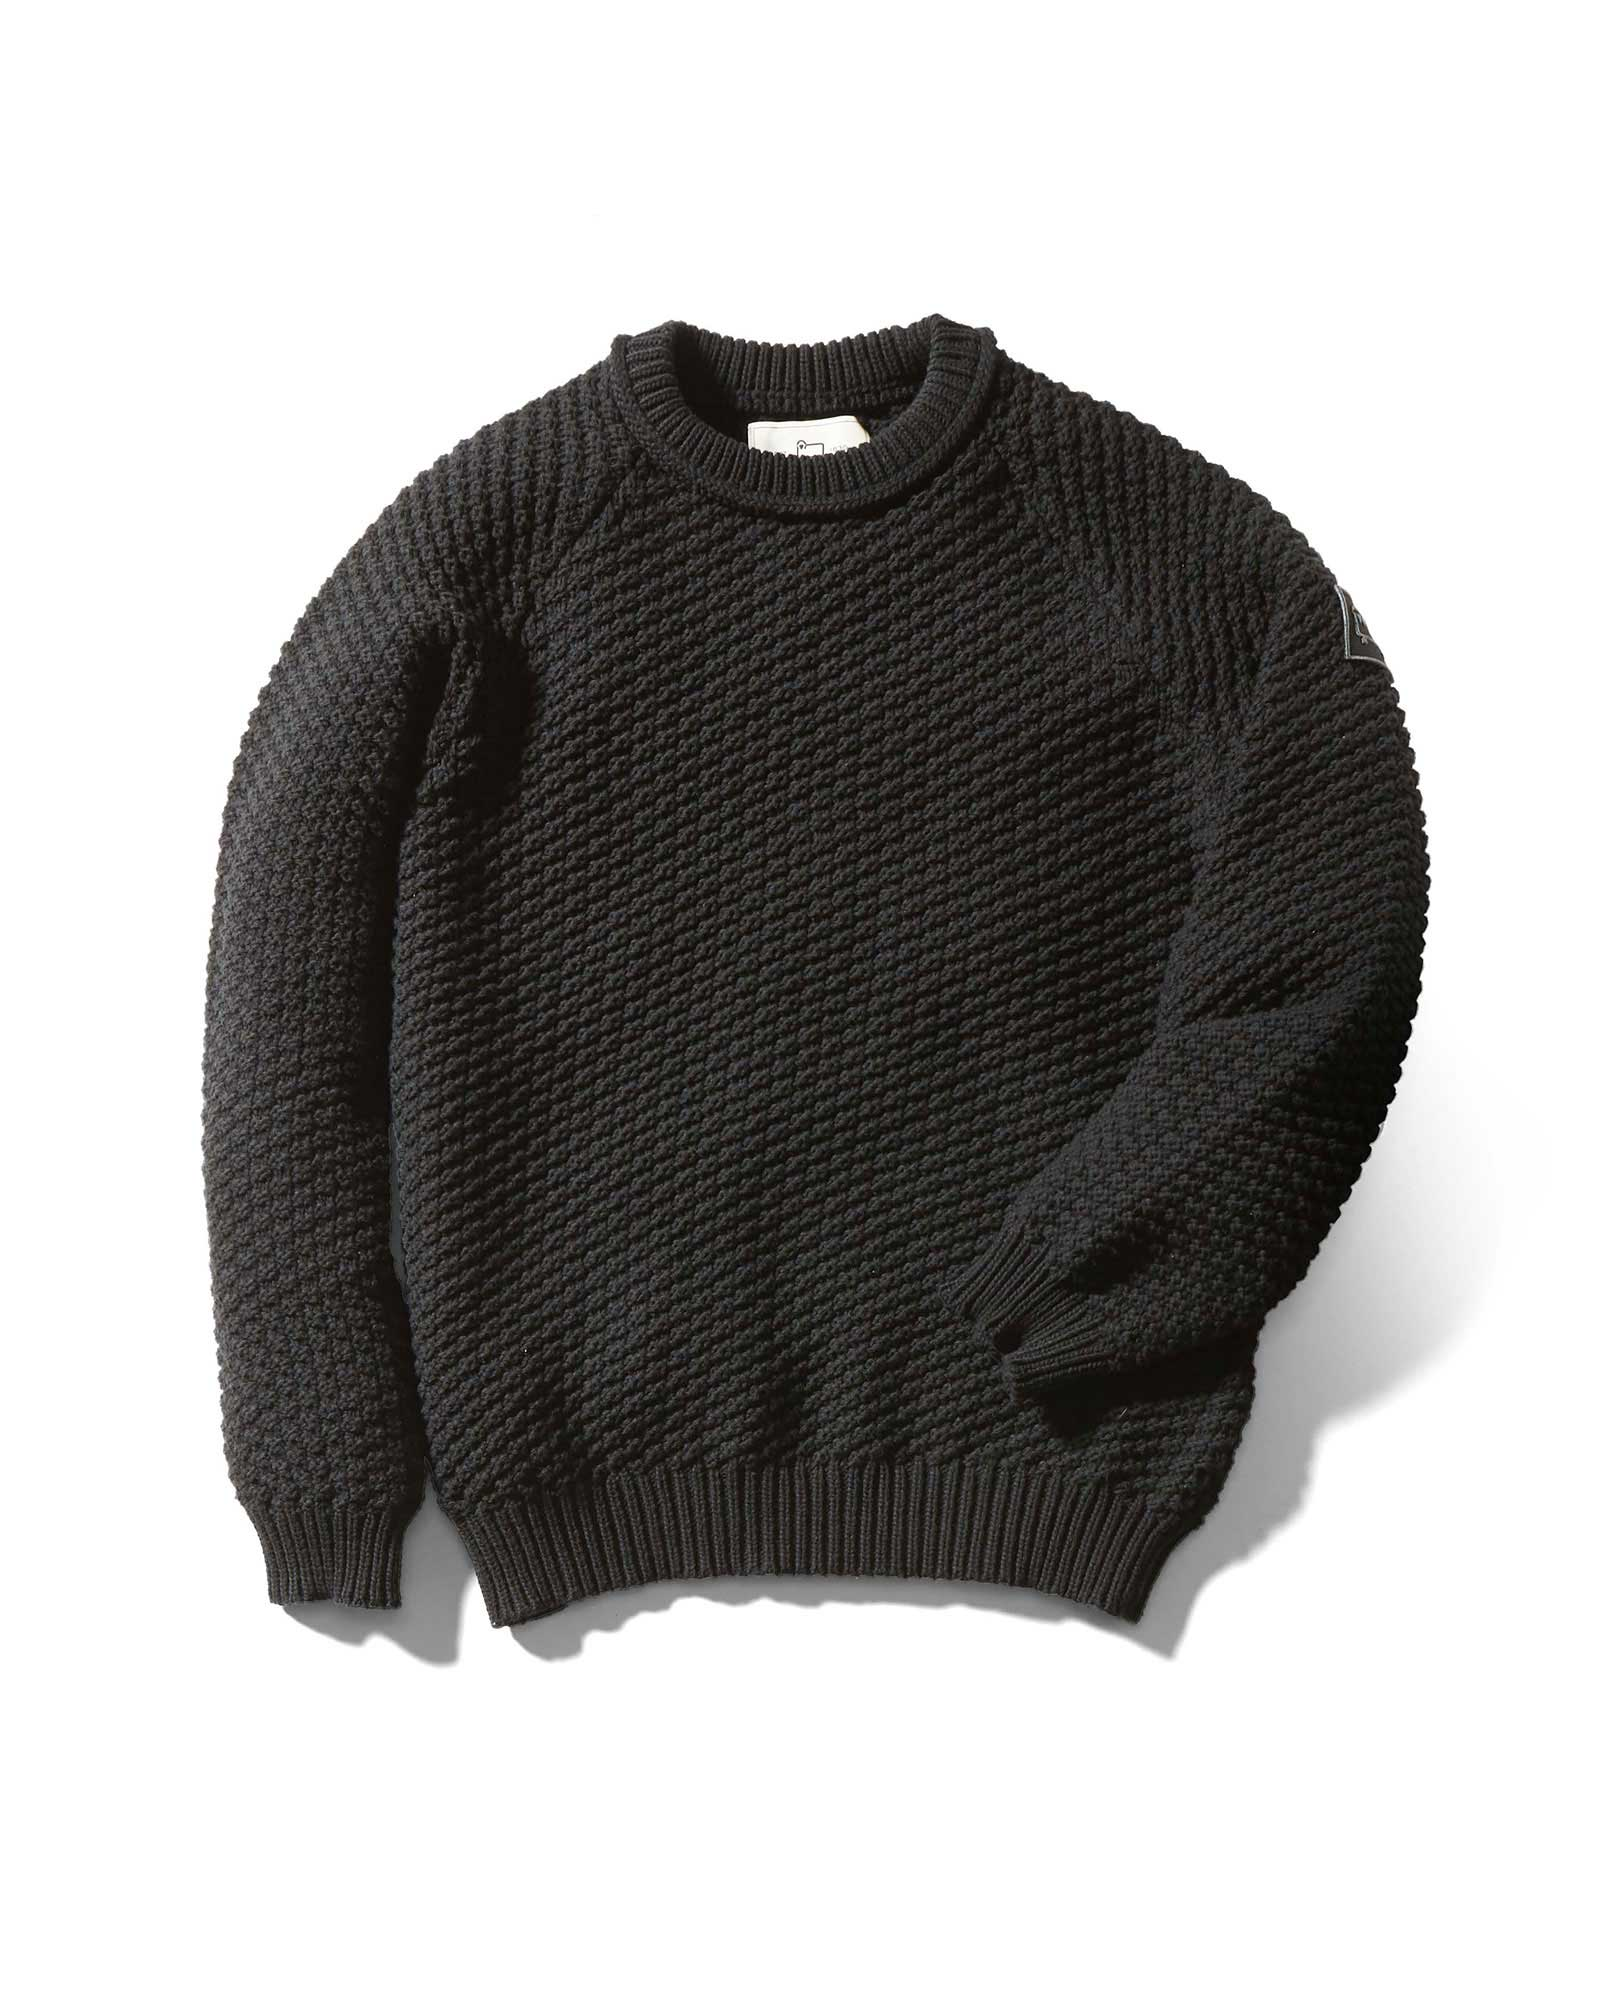 PADDED YARN KNIT CREW